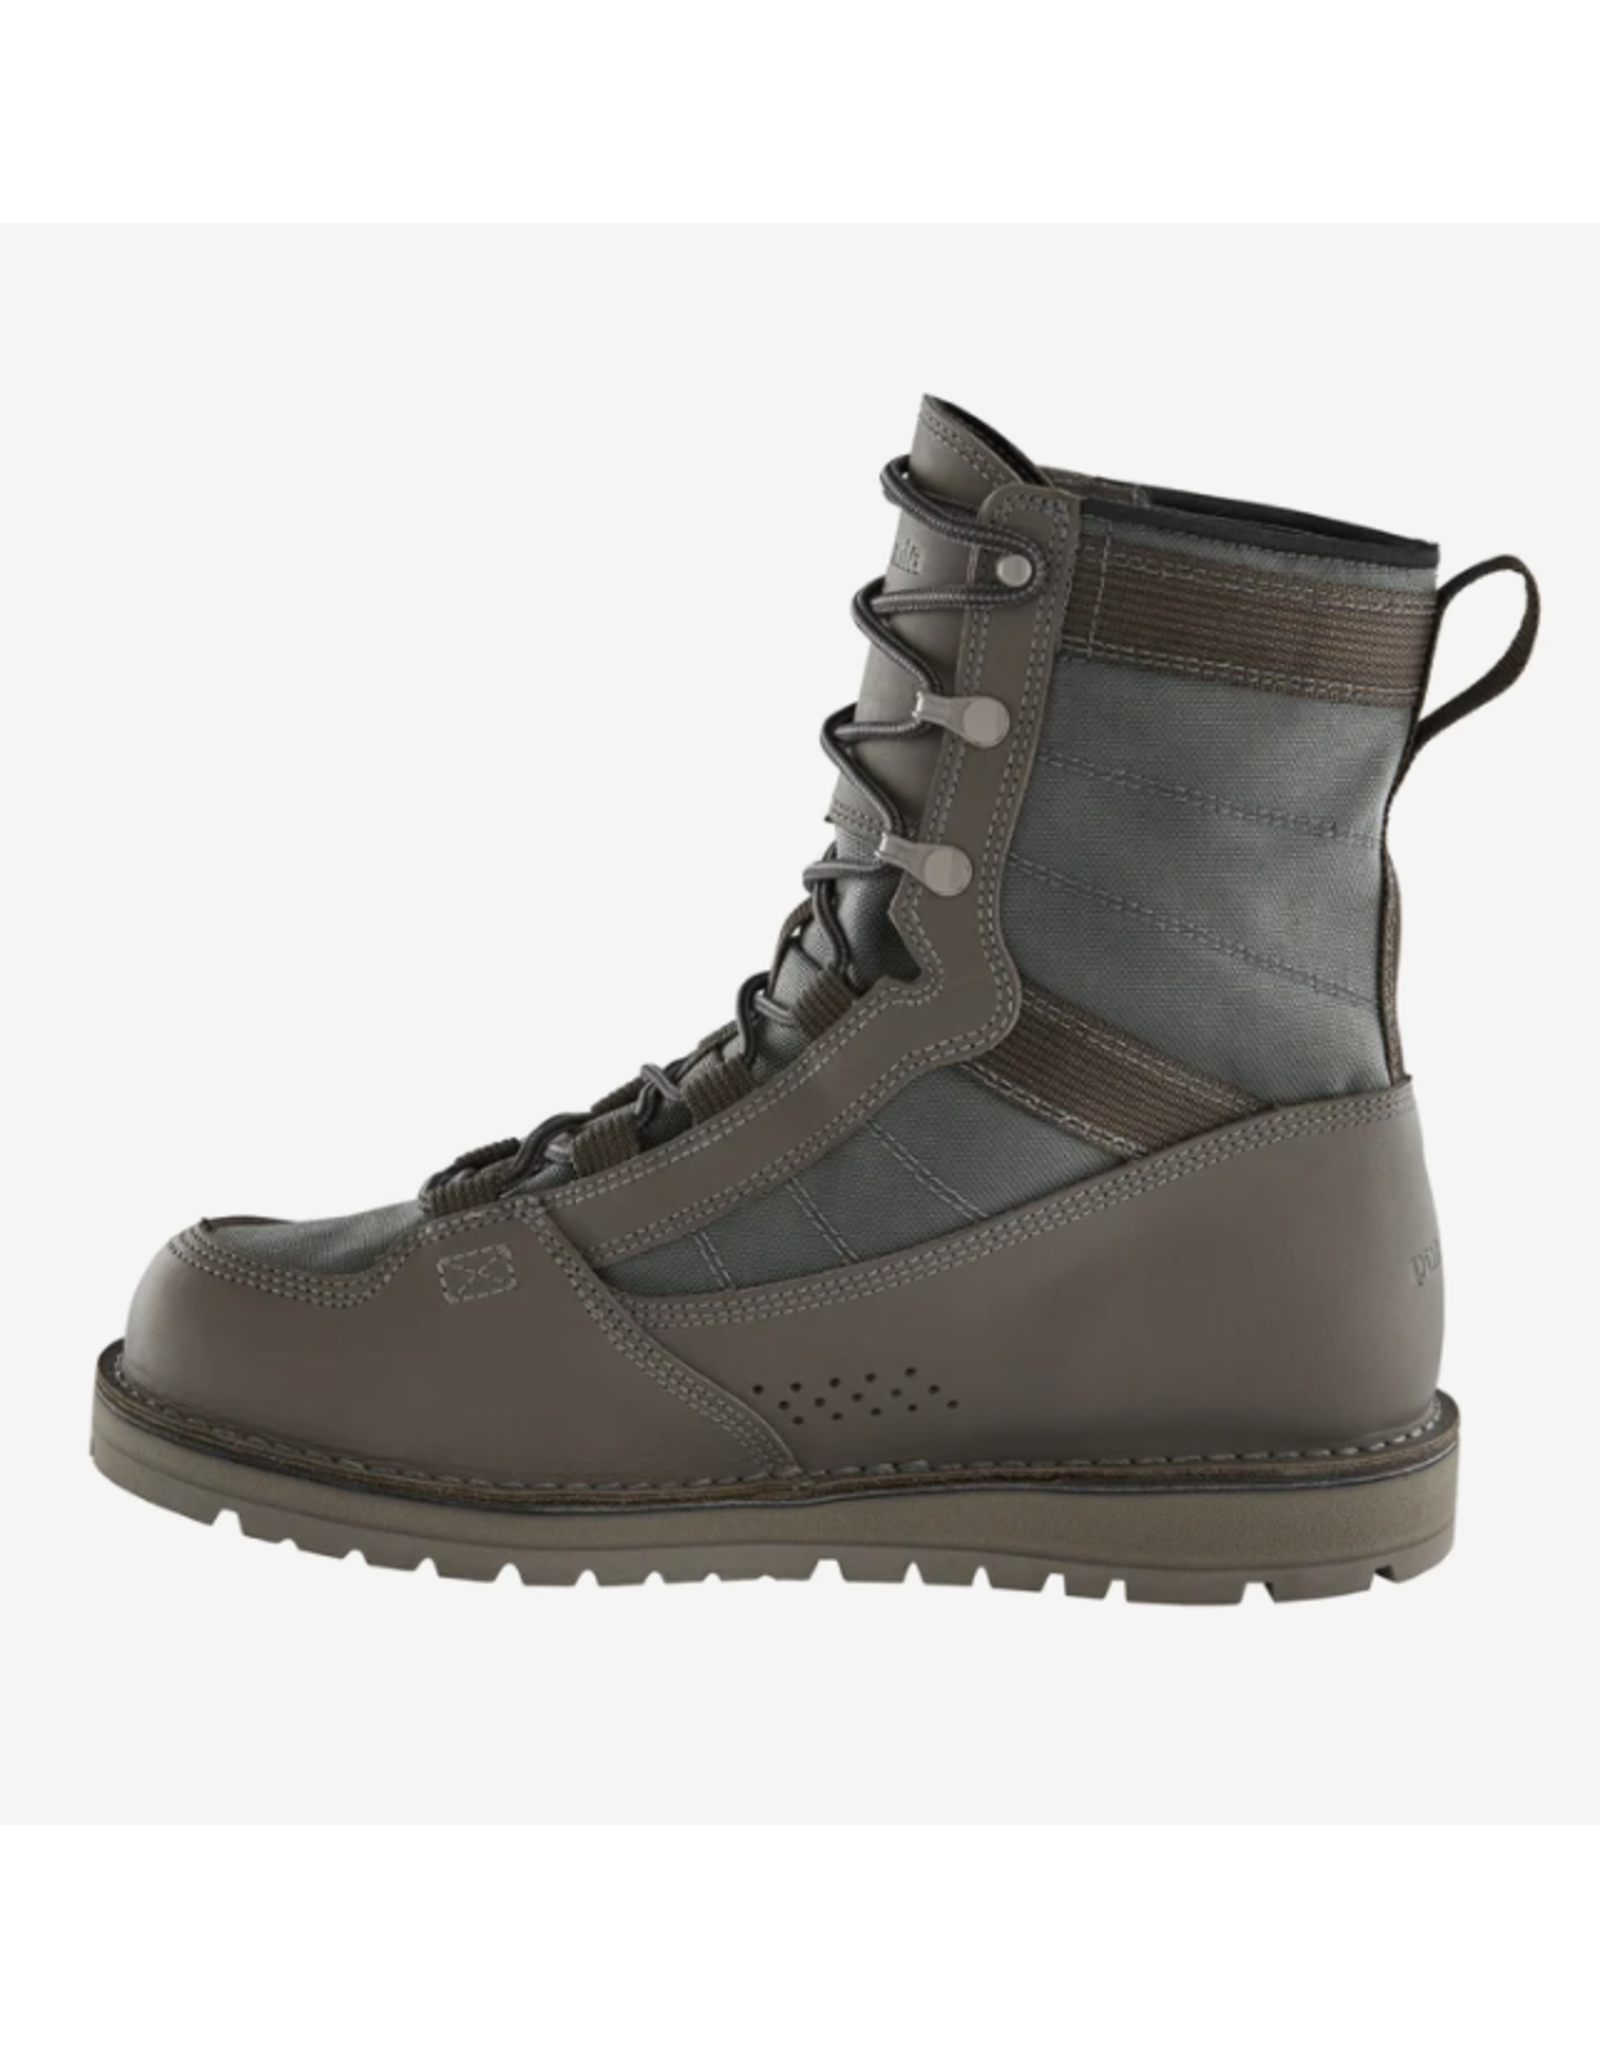 Patagonia Patagonia River Salt Wading Boots (Built by Danner)